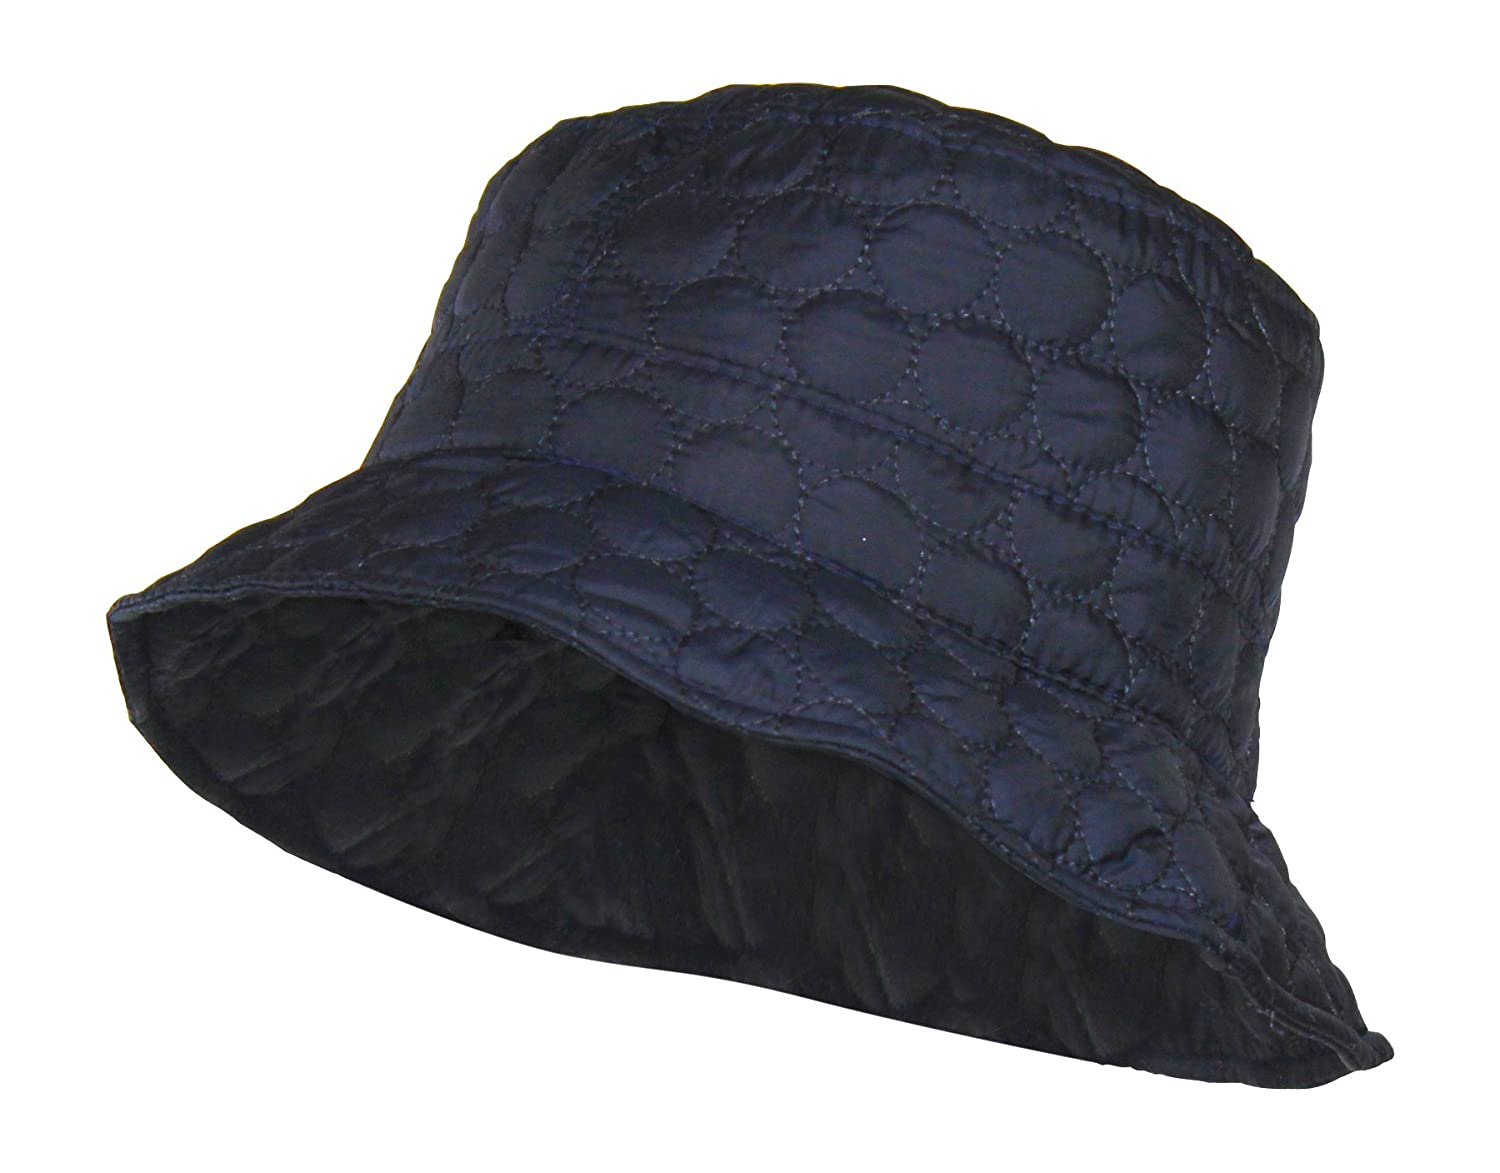 Folie Co. Packable Water Repellent Quilted Bucket Rain Hat w/Adjustable Drawstring